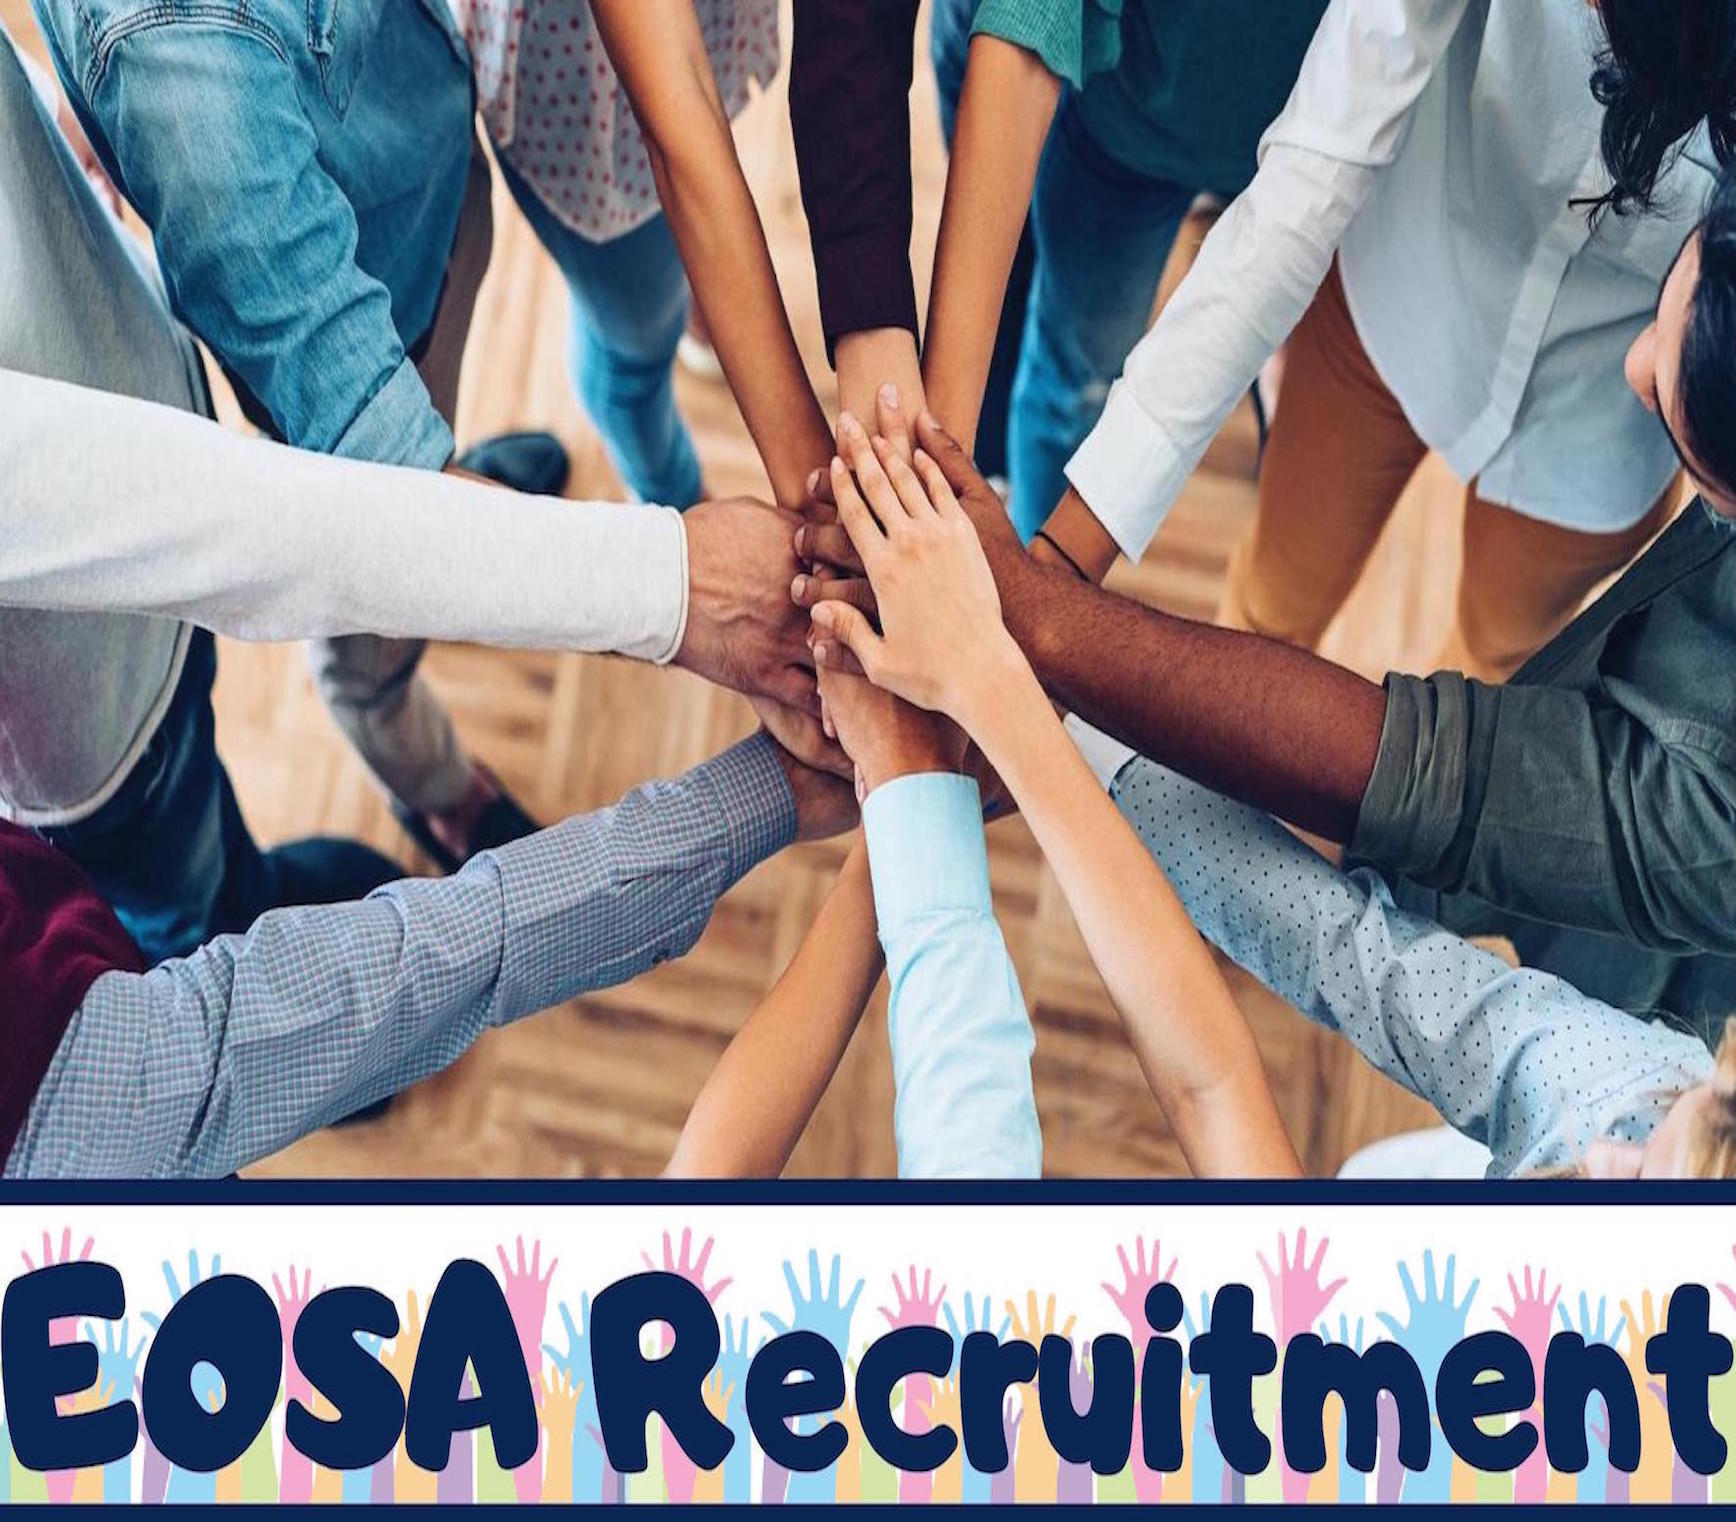 EOSA-Recruitment-poster-page-001